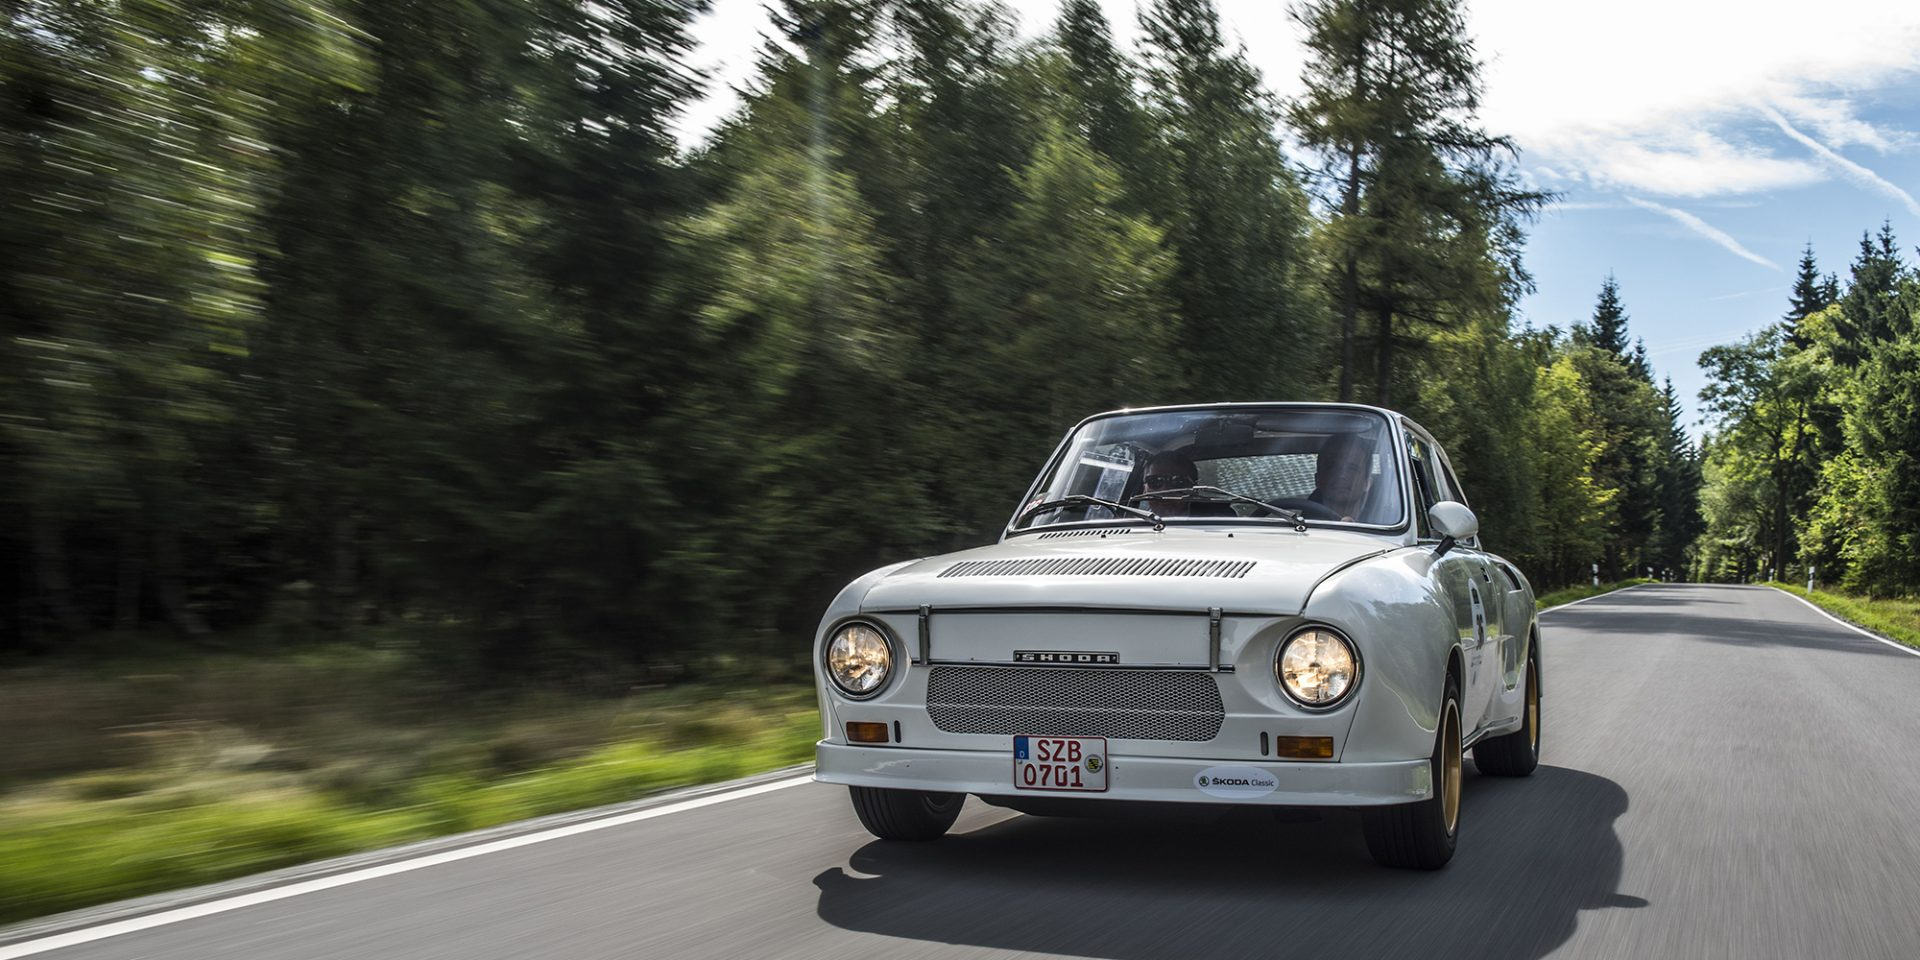 First-hand Classic Rally Experience